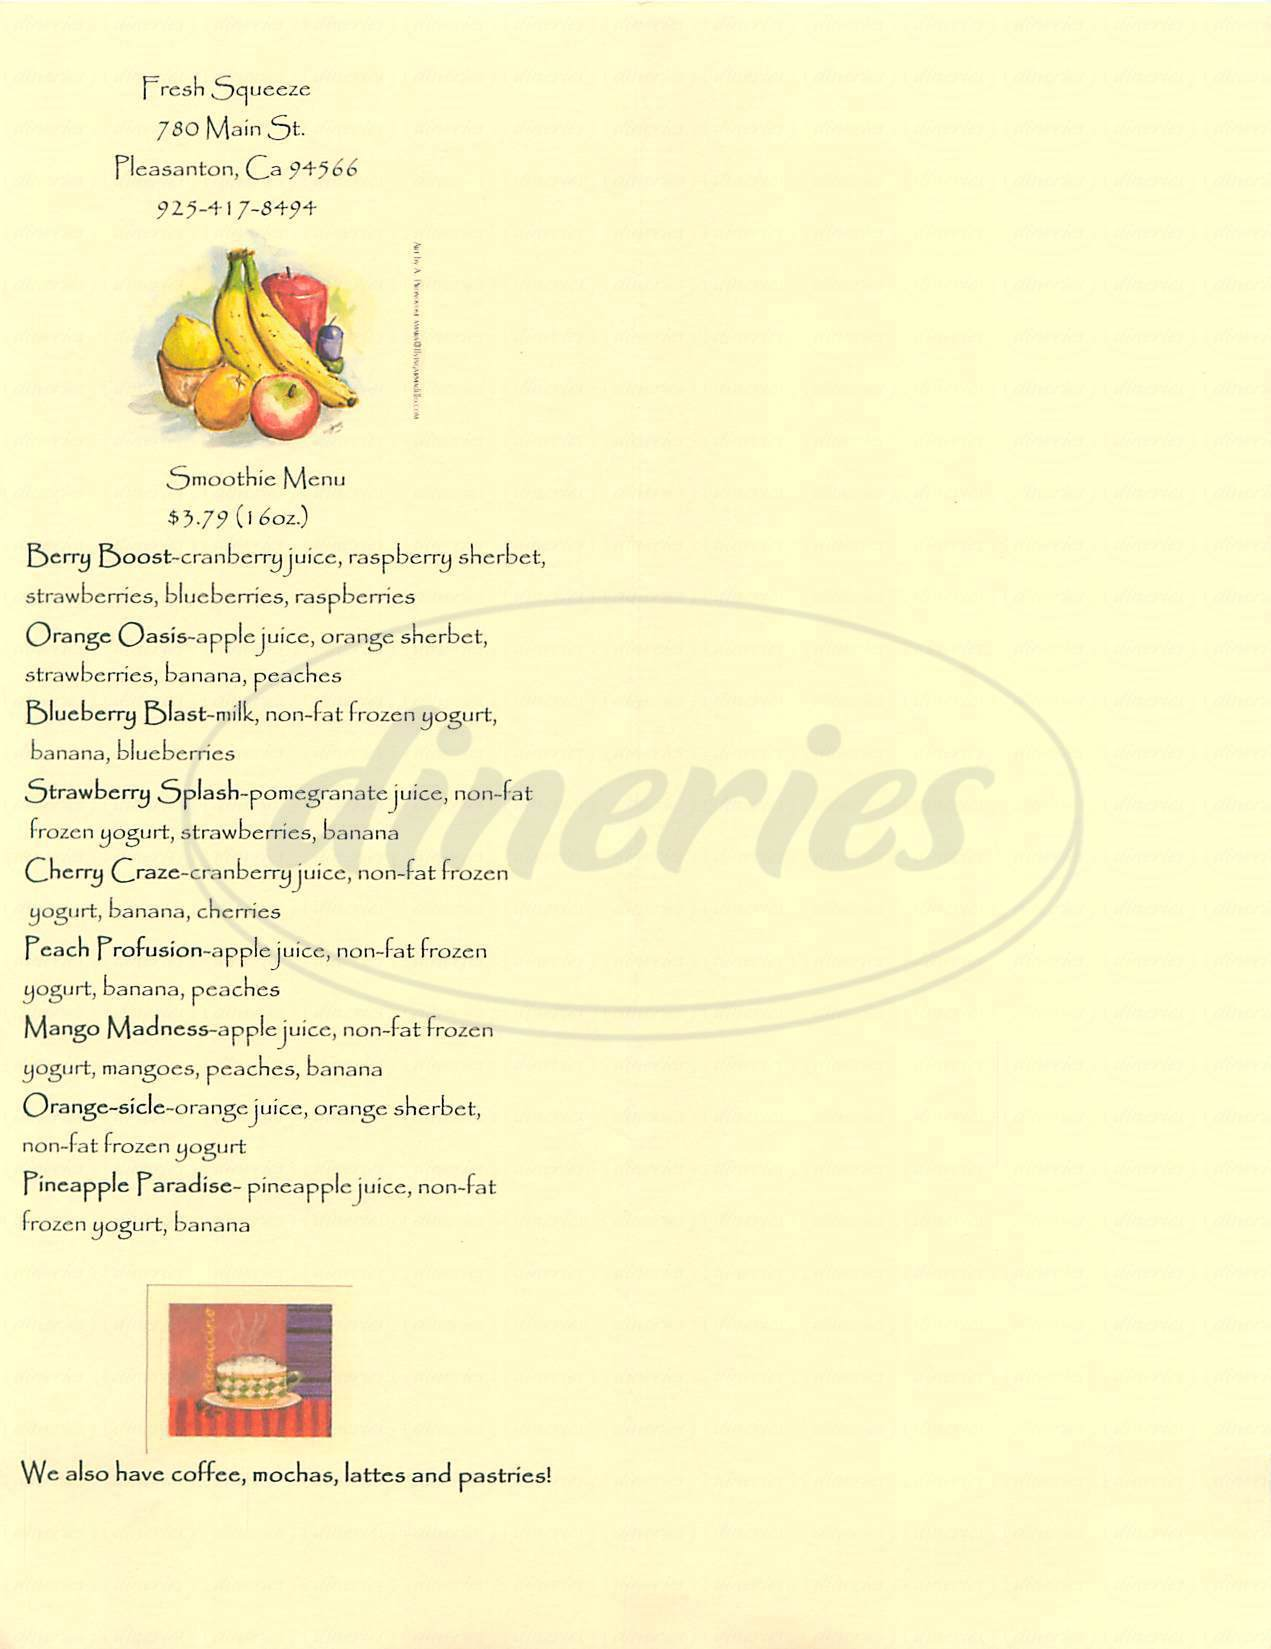 menu for Fresh Squeeze